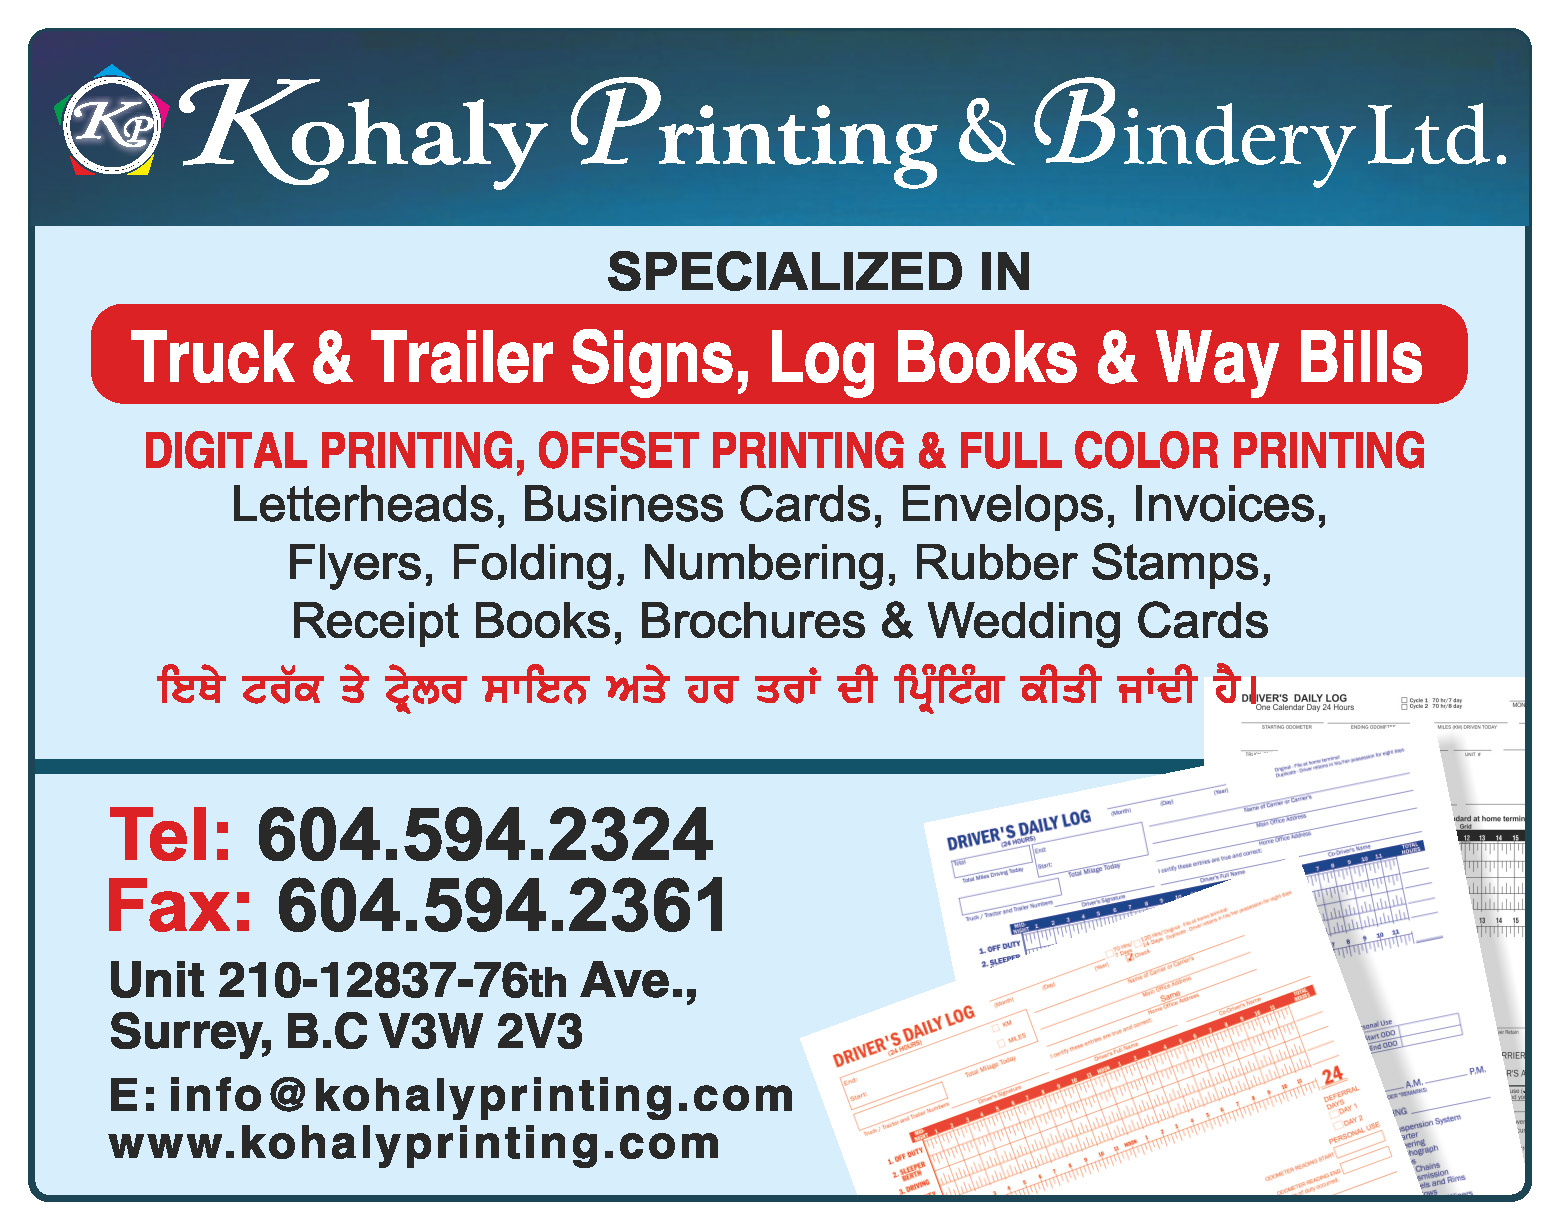 kohaly-printing-bindery-ltd-IC3GyOq.jpeg